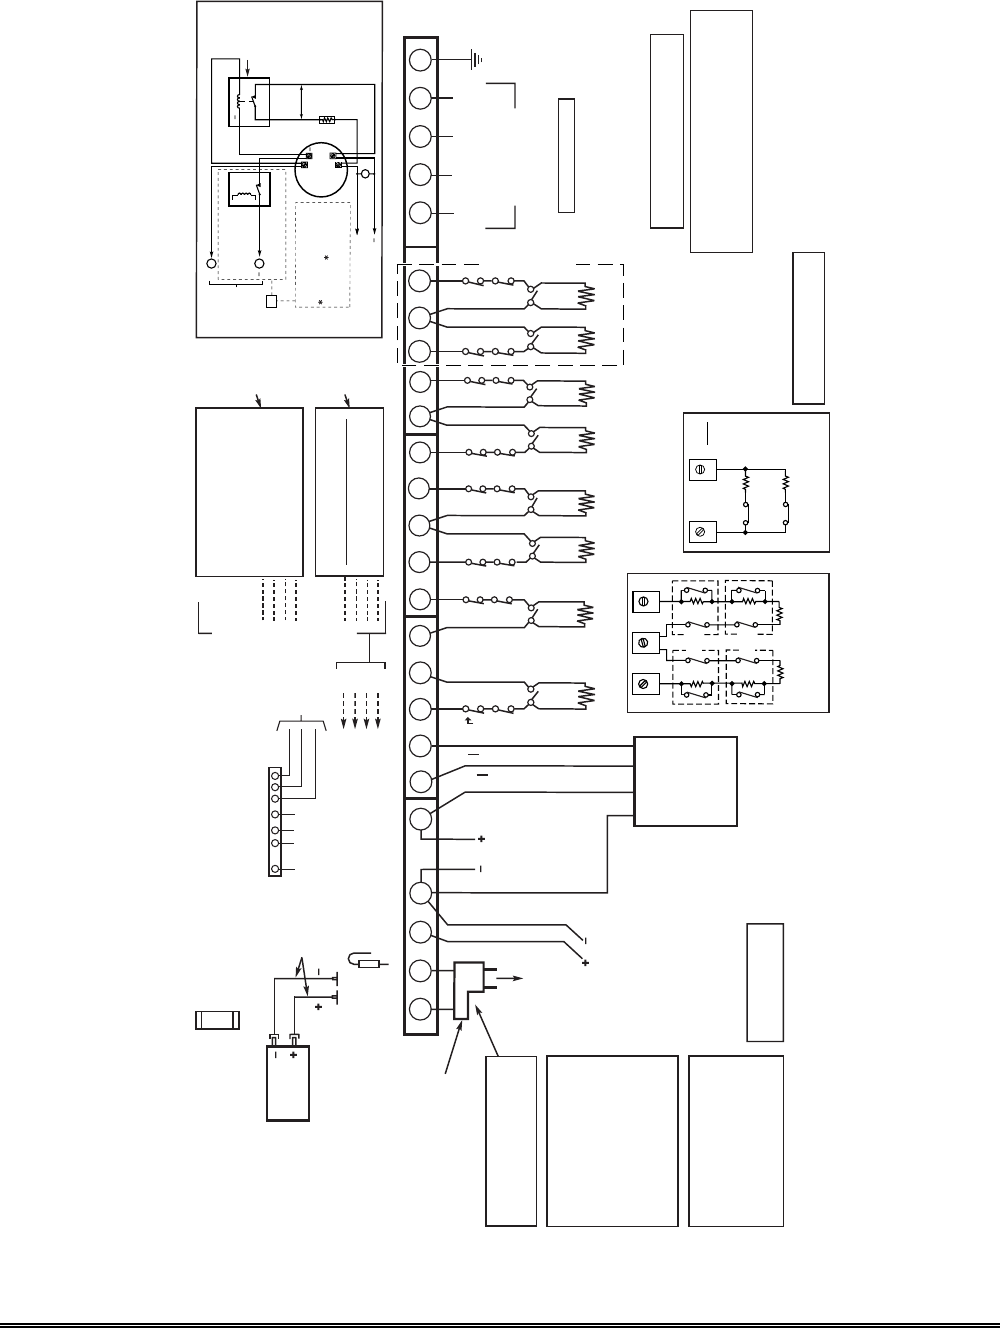 fcaa778a 21ed 4e02 a612 edff3eb6e8f9 bg4f page 79 of honeywell home security system vista 15p user guide honeywell vista 15p wiring diagram at nearapp.co